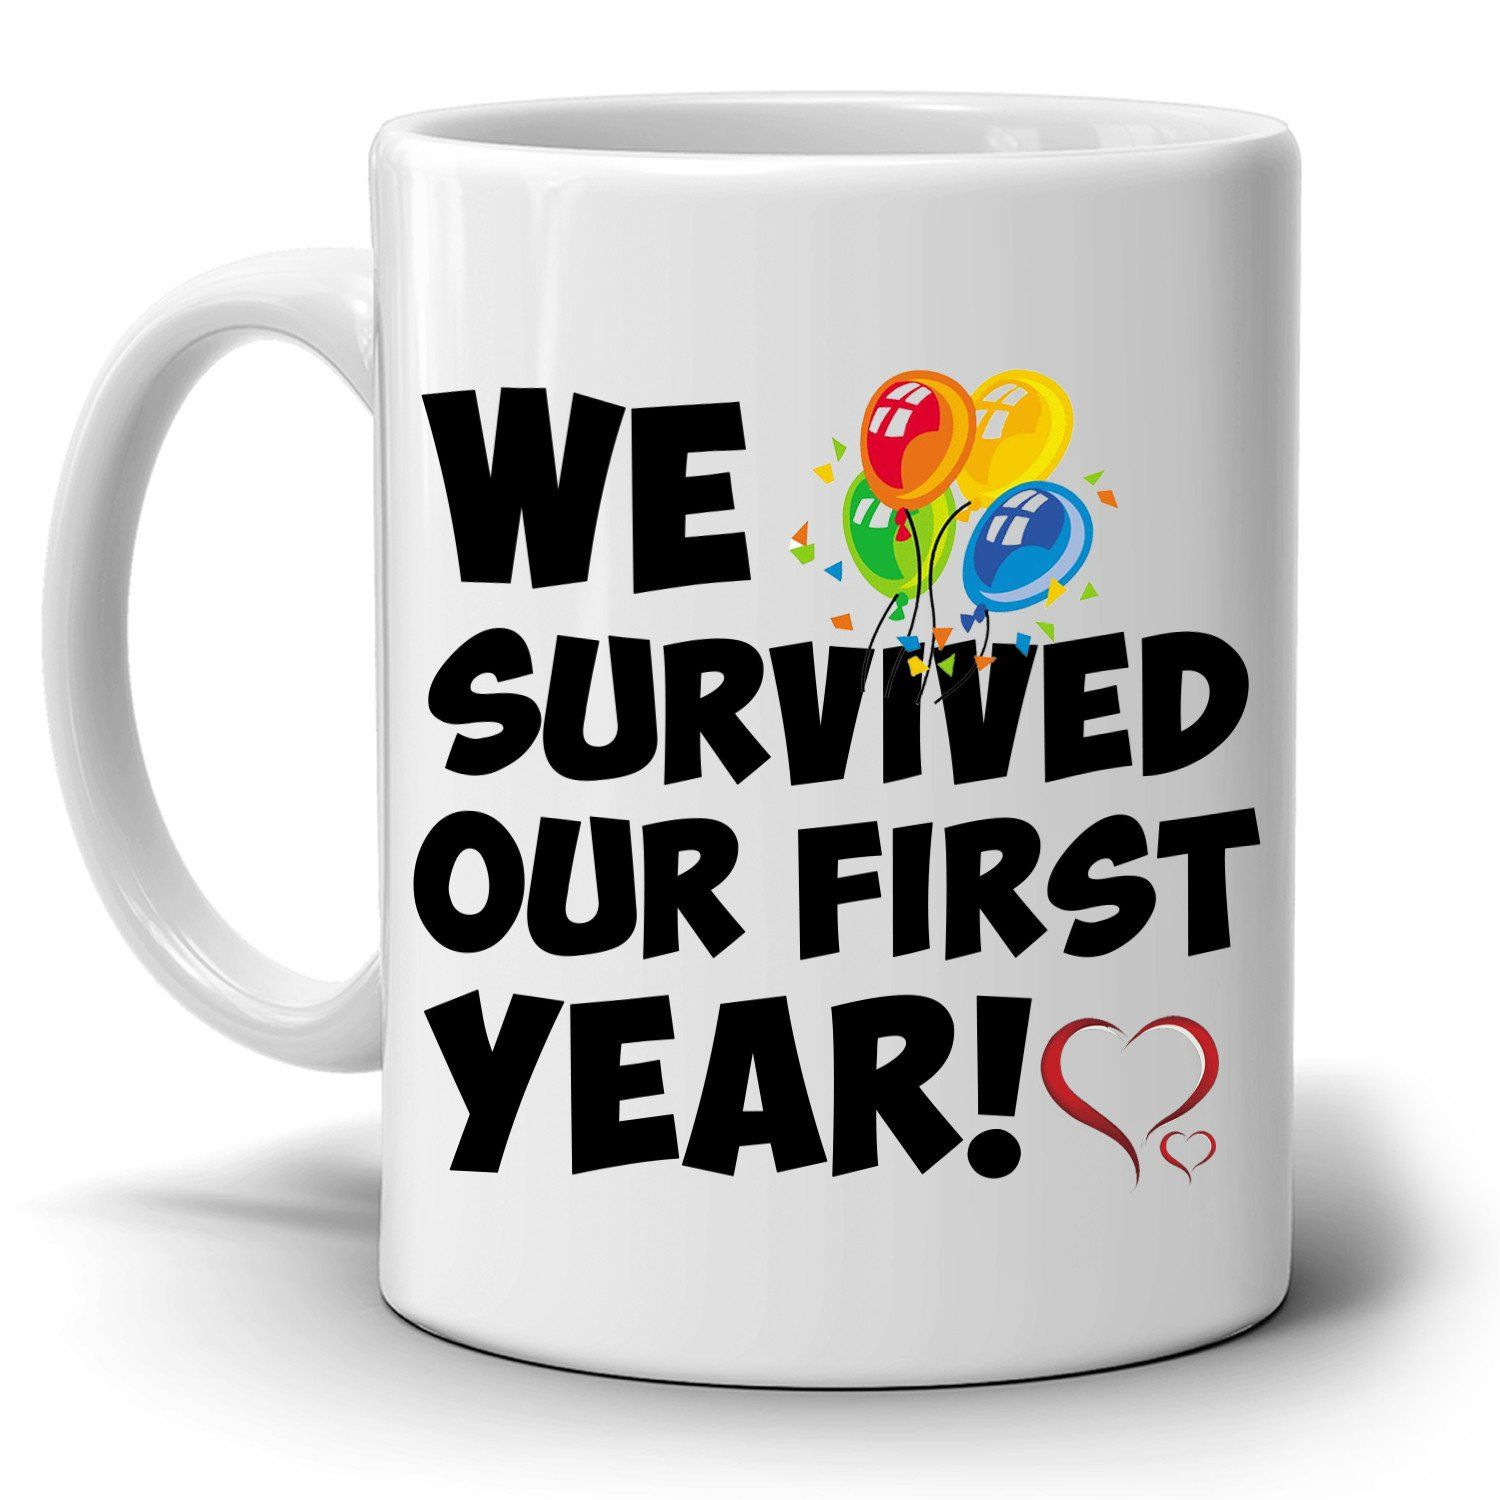 We Survived Our First Year! Couple's Coffee Mug in 2019